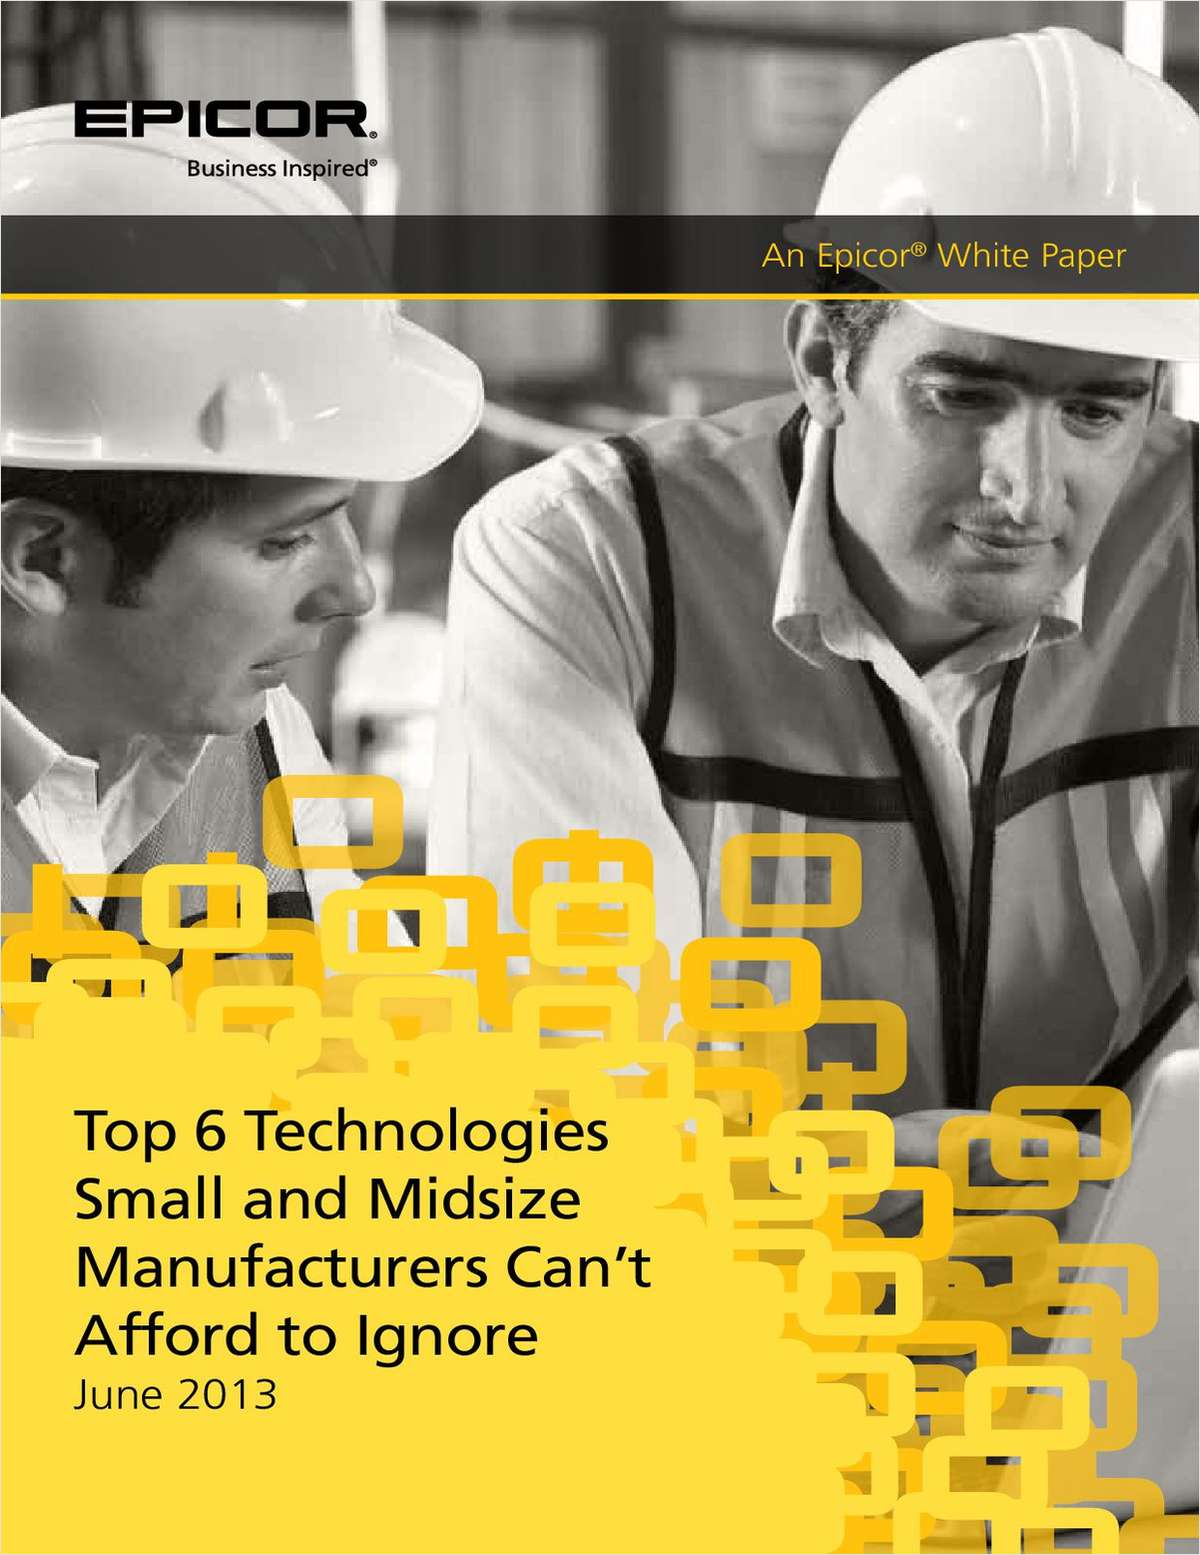 Top 6 Technologies Small and Midsize Manufacturers Can't Afford to Ignore